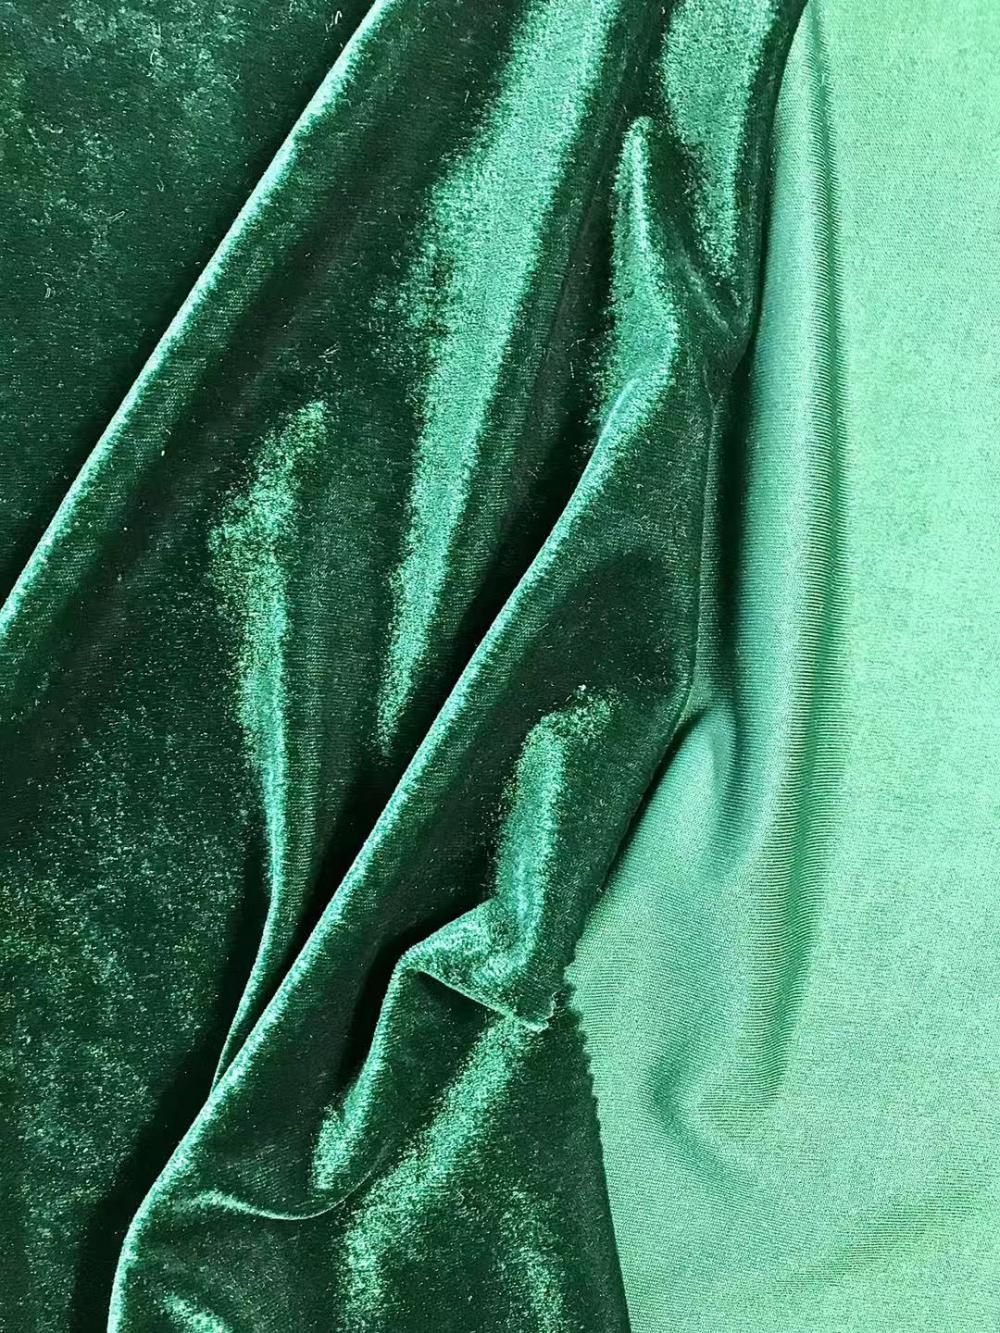 Sofa Curtain Furniture garment Velvet Fabric